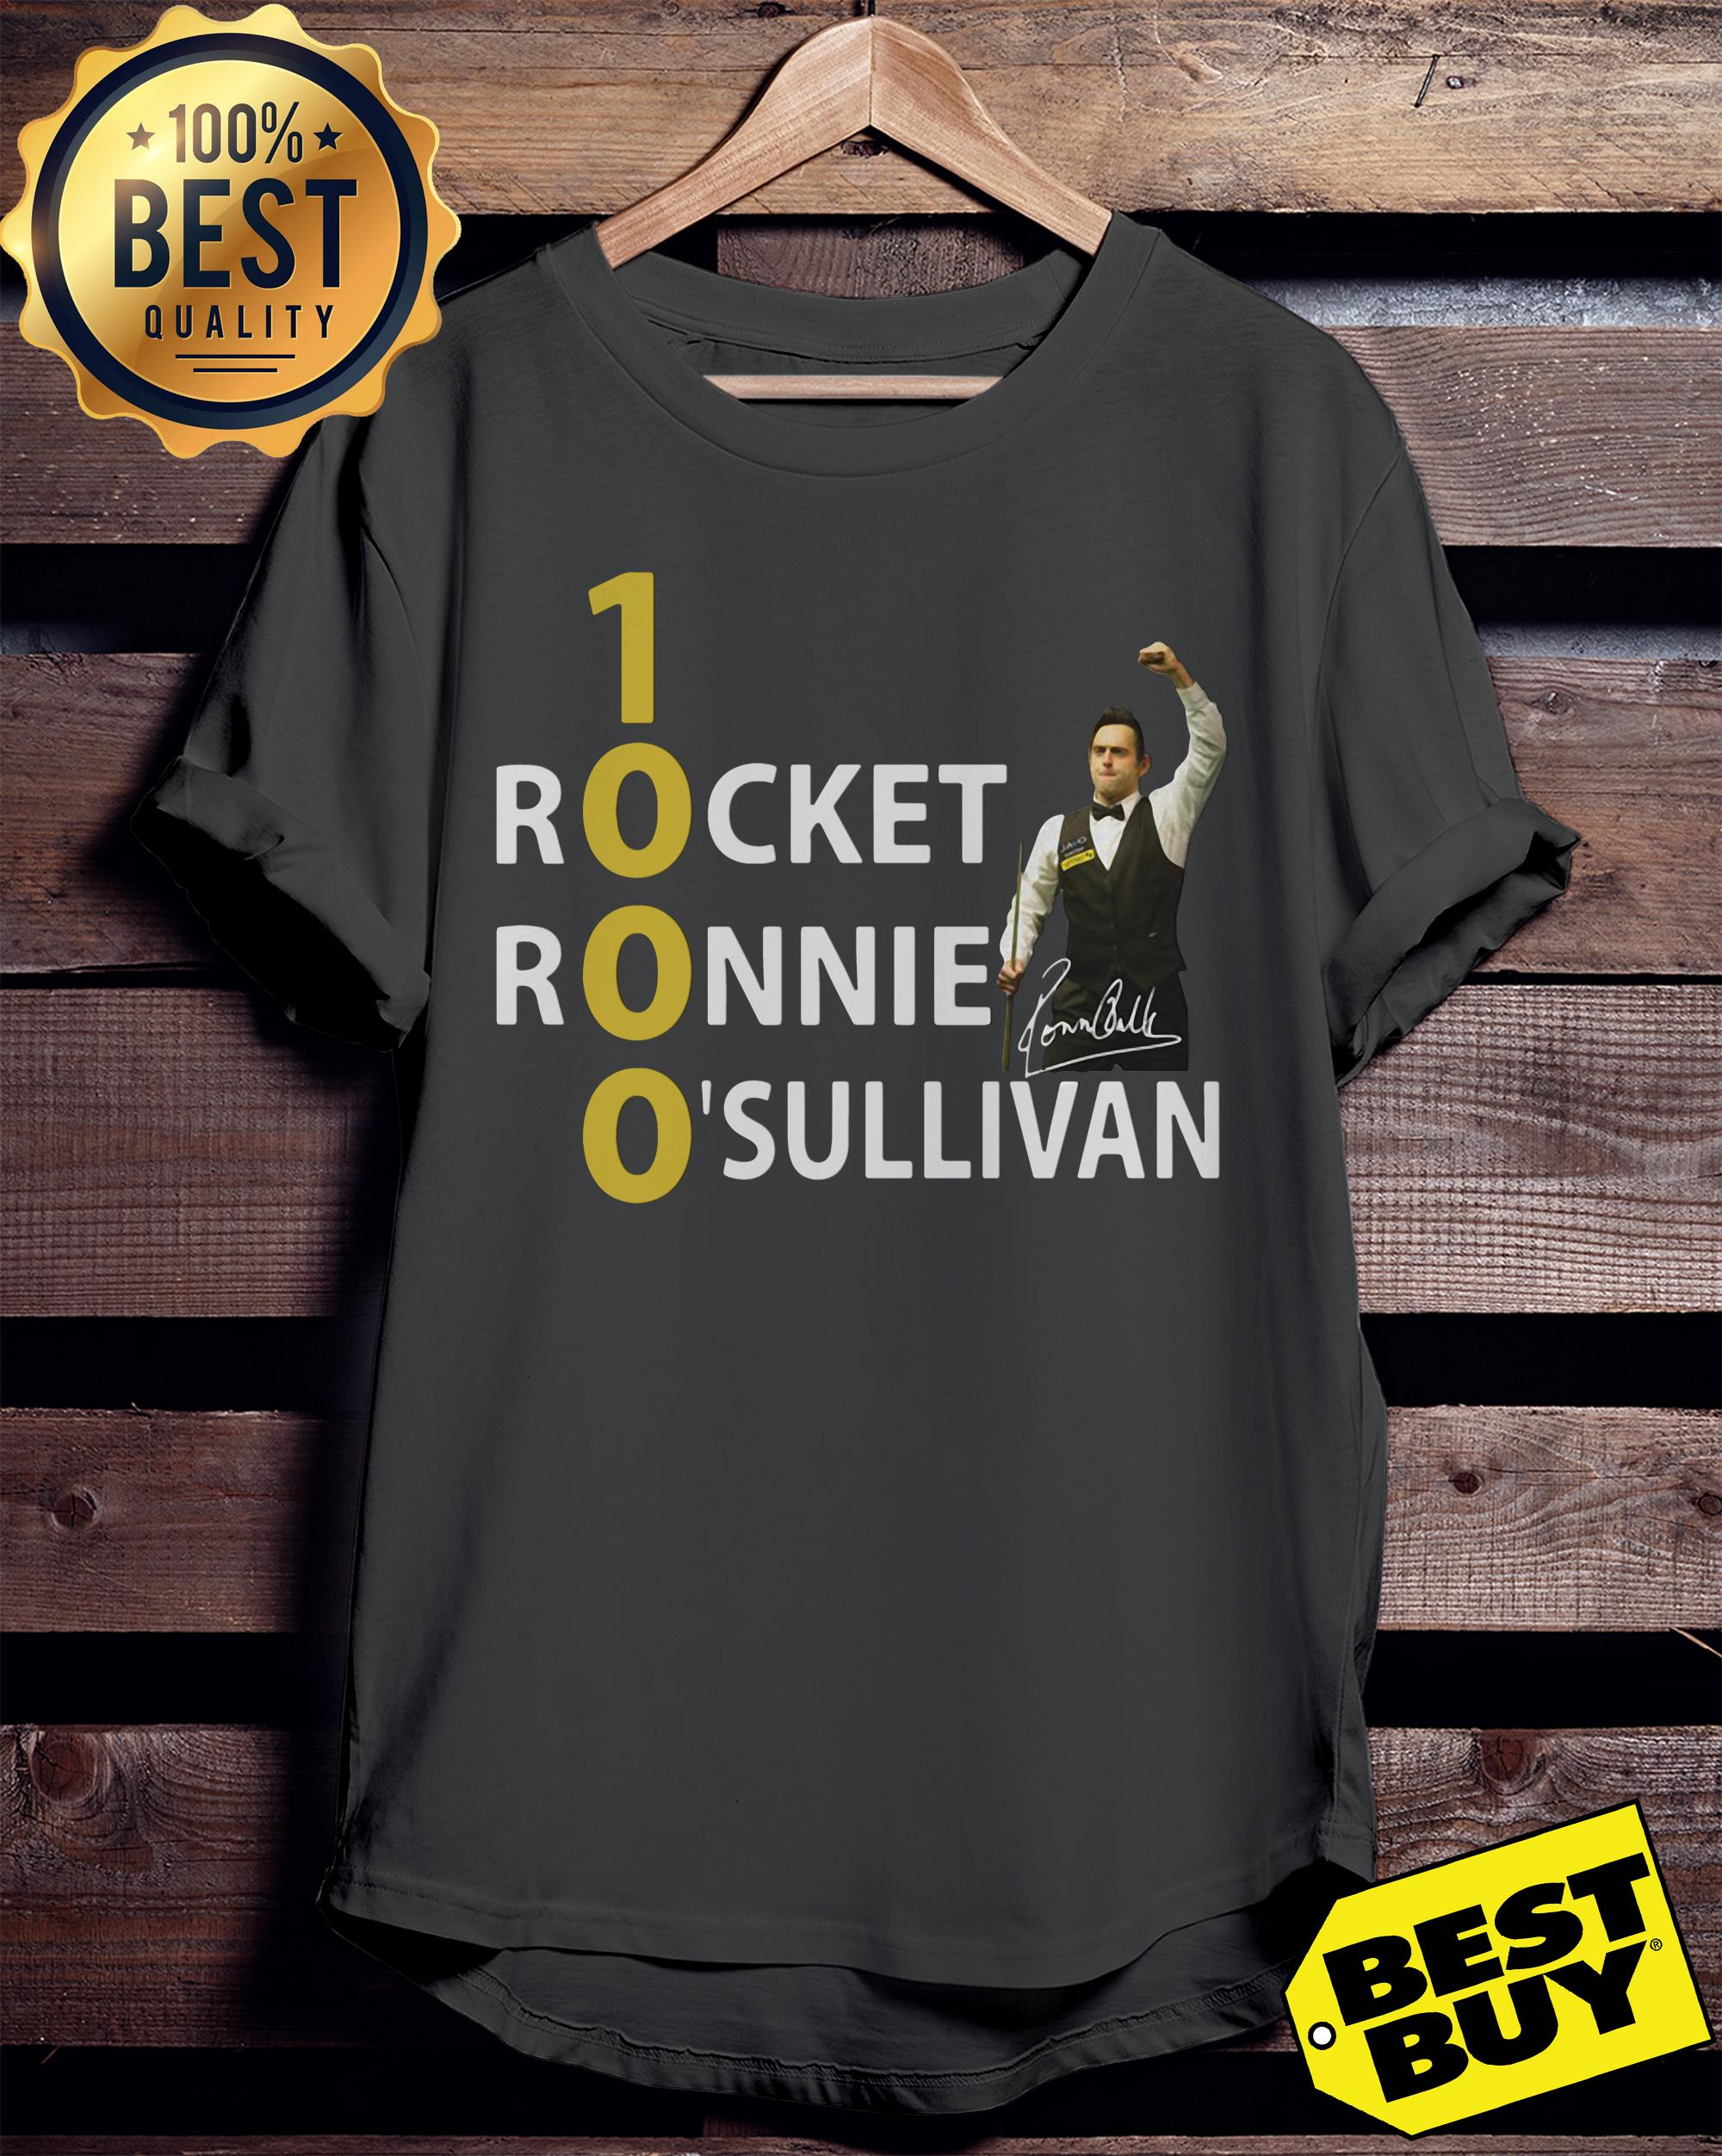 1000 Rocket Ronnie O'Sullivan funny ladies tee